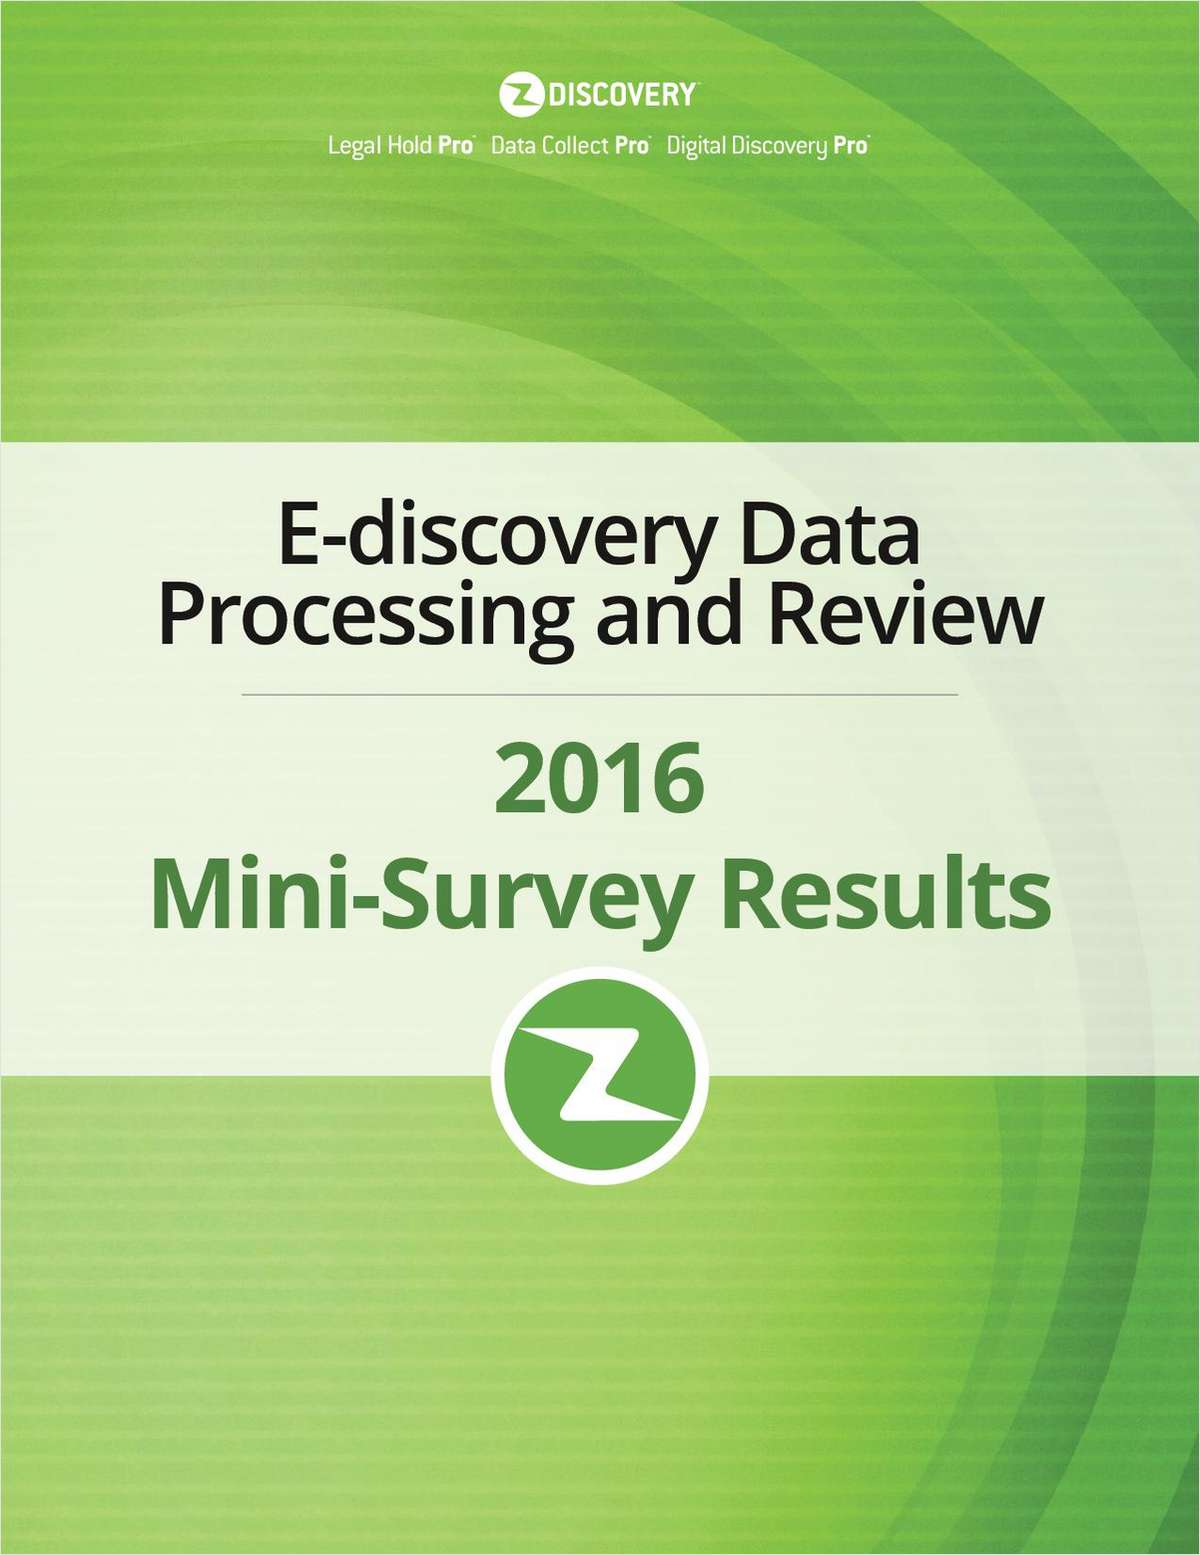 2016 E-Discovery Data Processing Benchmark Report